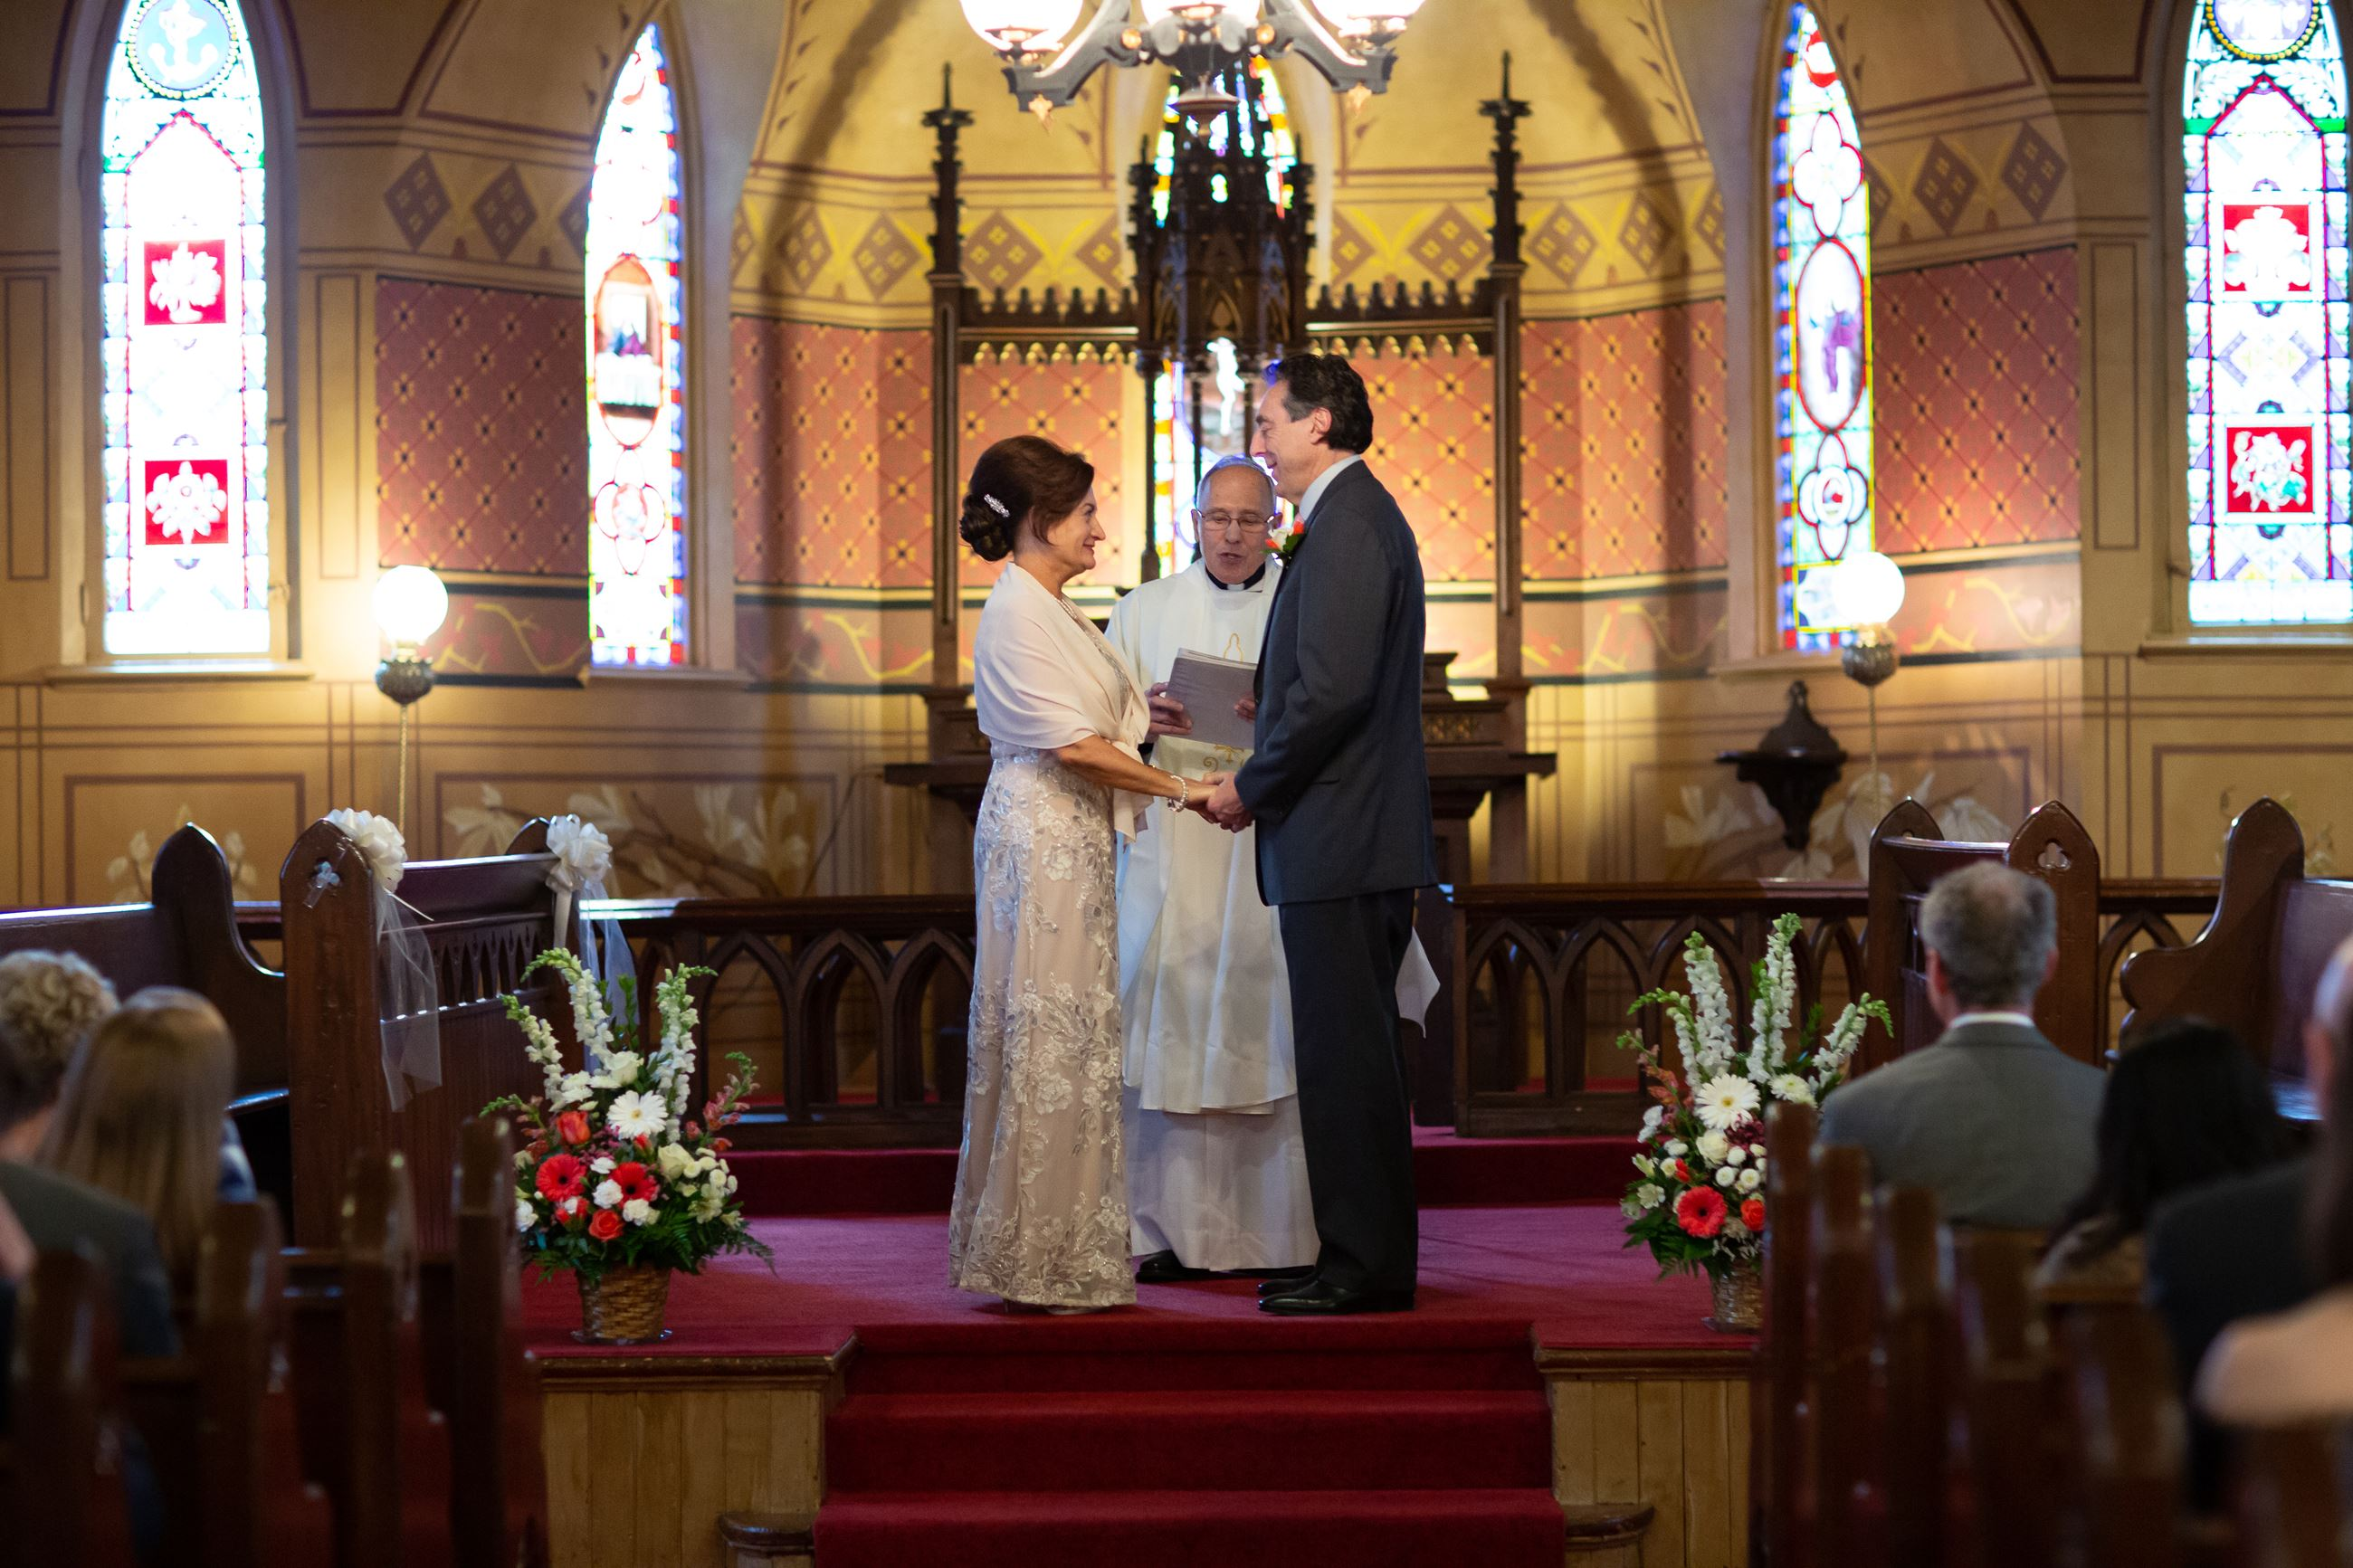 Couple being wed at alter at Century Memorial Chapel at Naper Settlement in Naperville, IL.